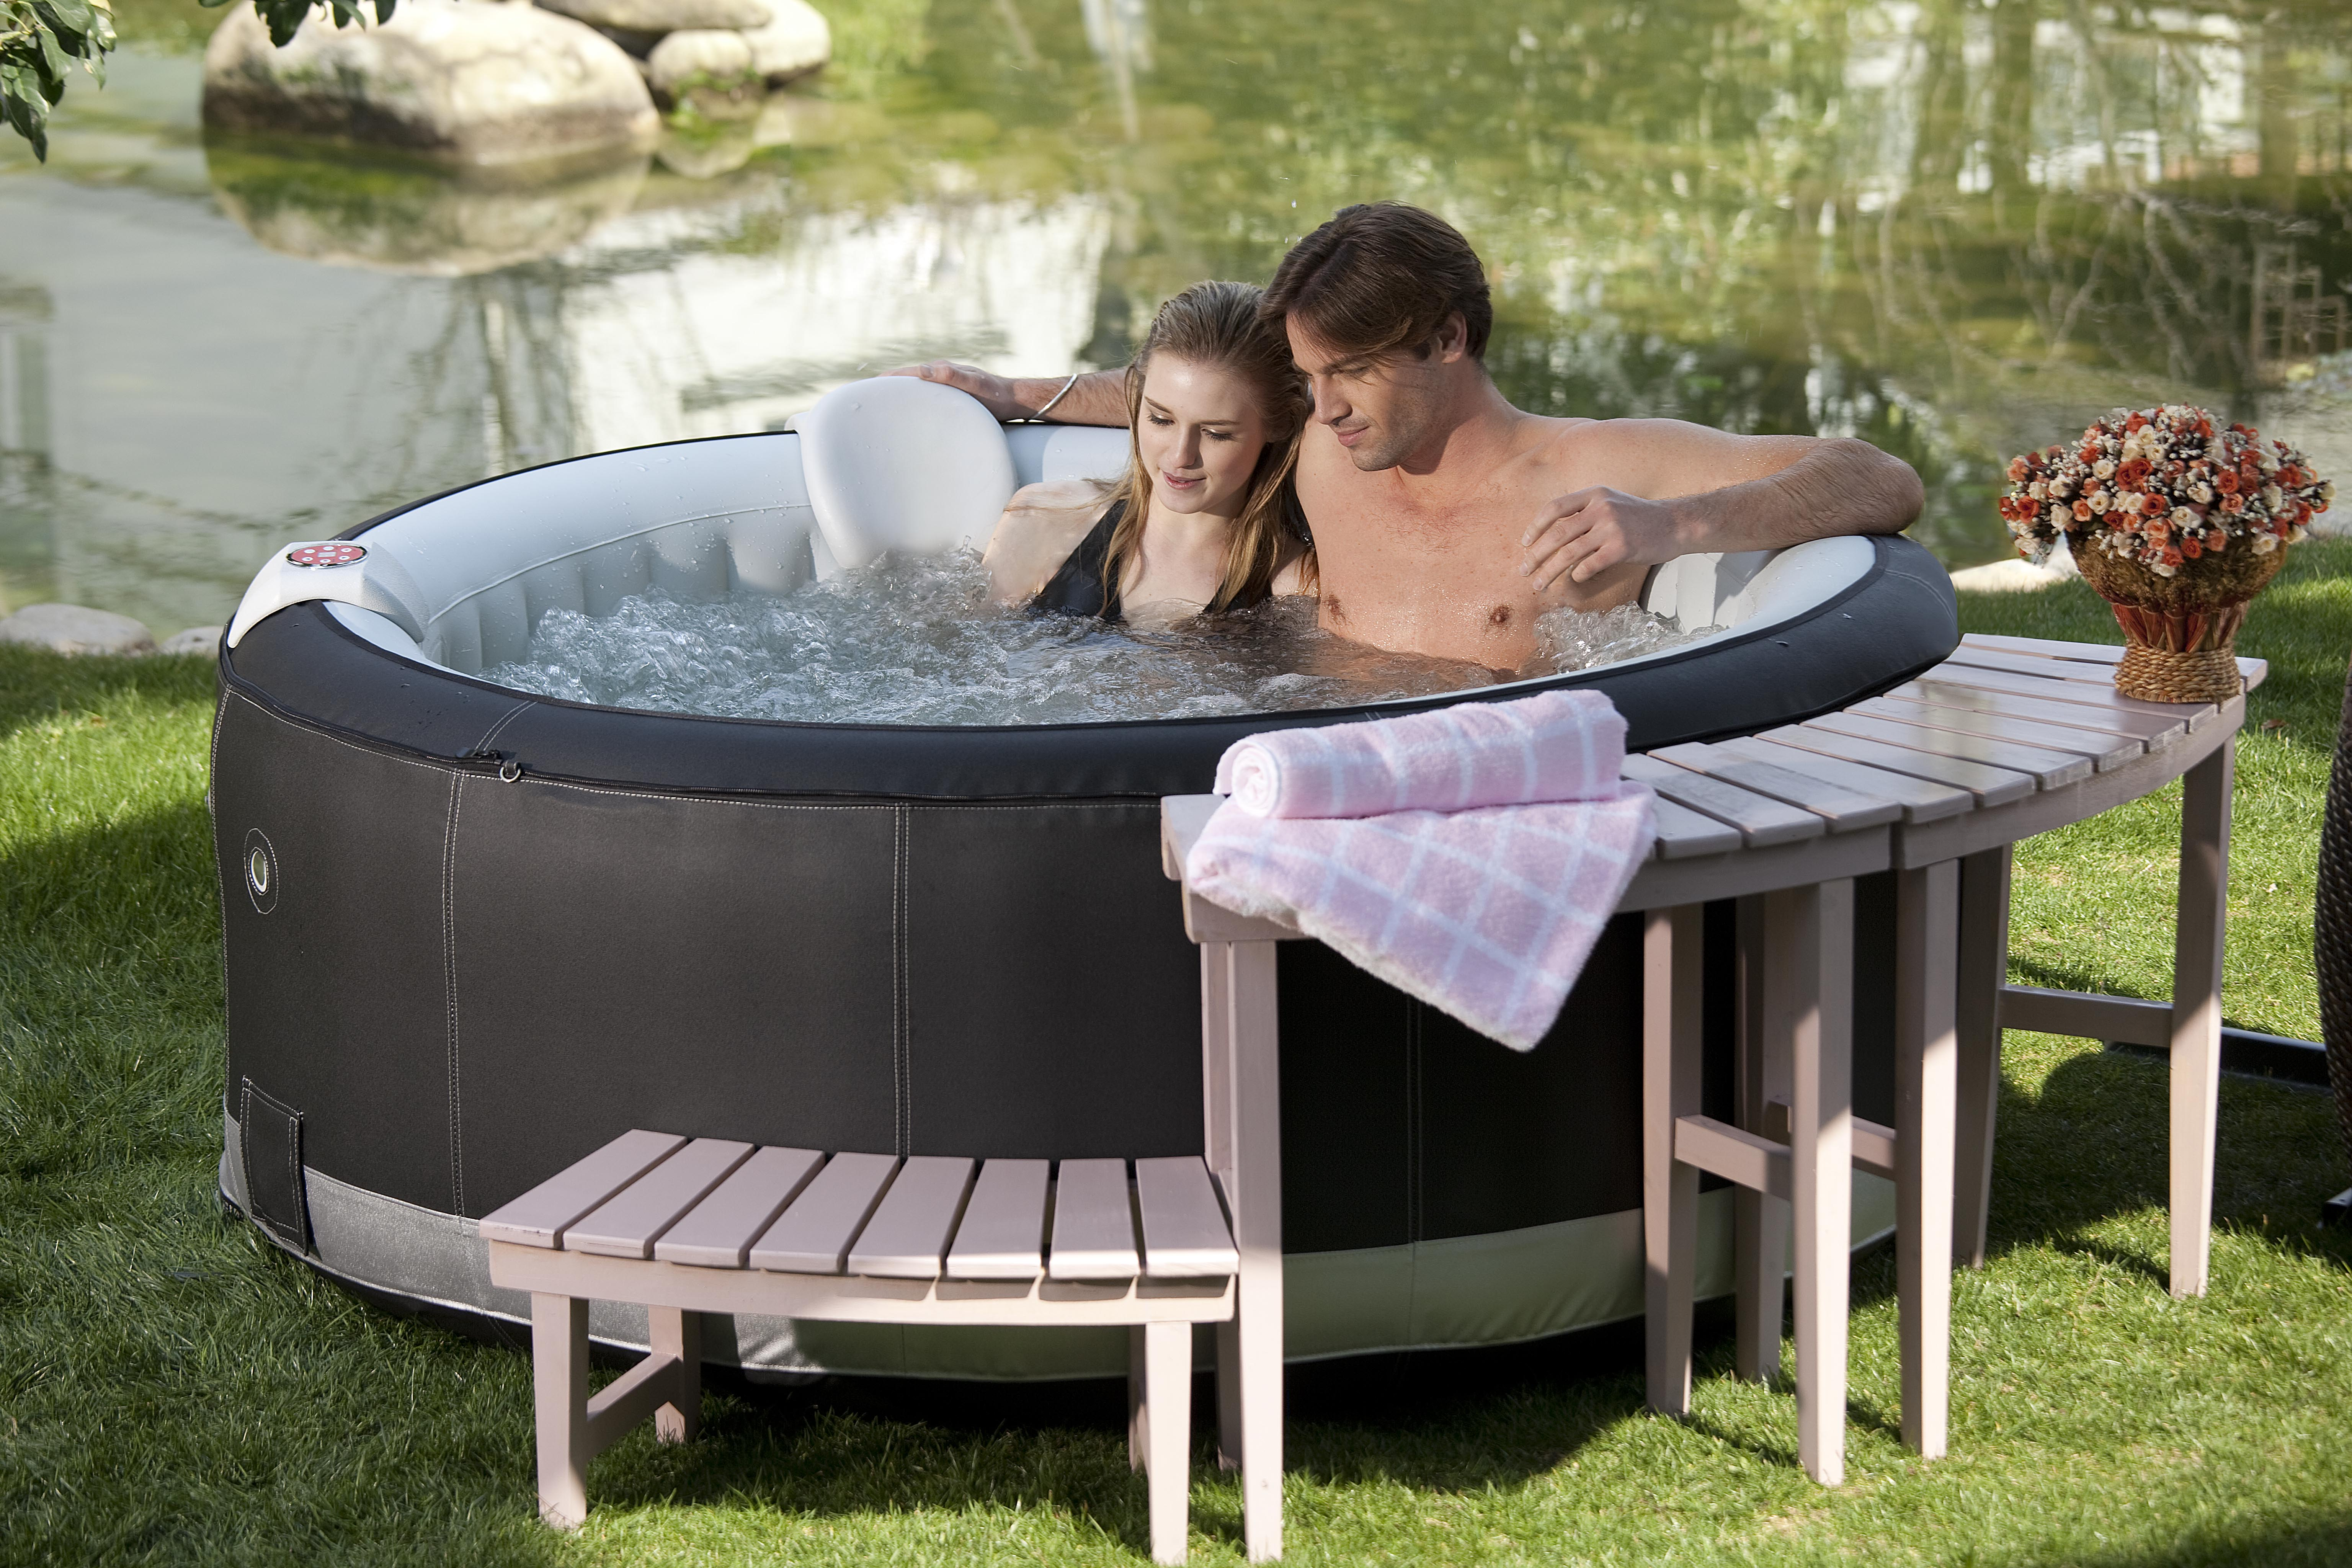 Jacuzzi gonflable zodiac - Spa gonflable de luxe ...